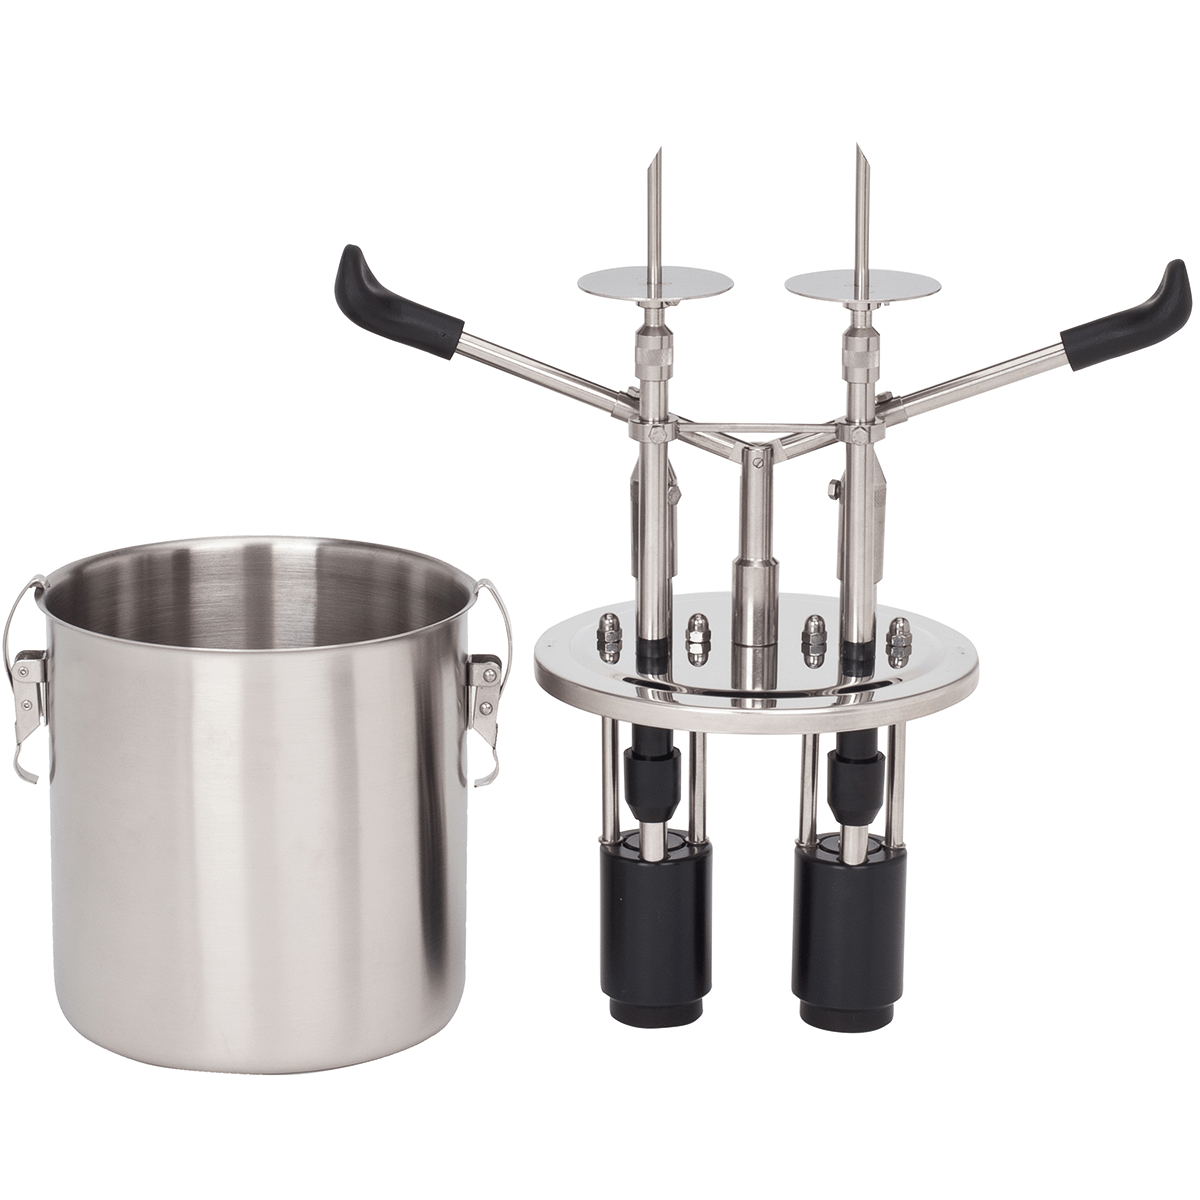 Pastry Filler Stainless Steel Container